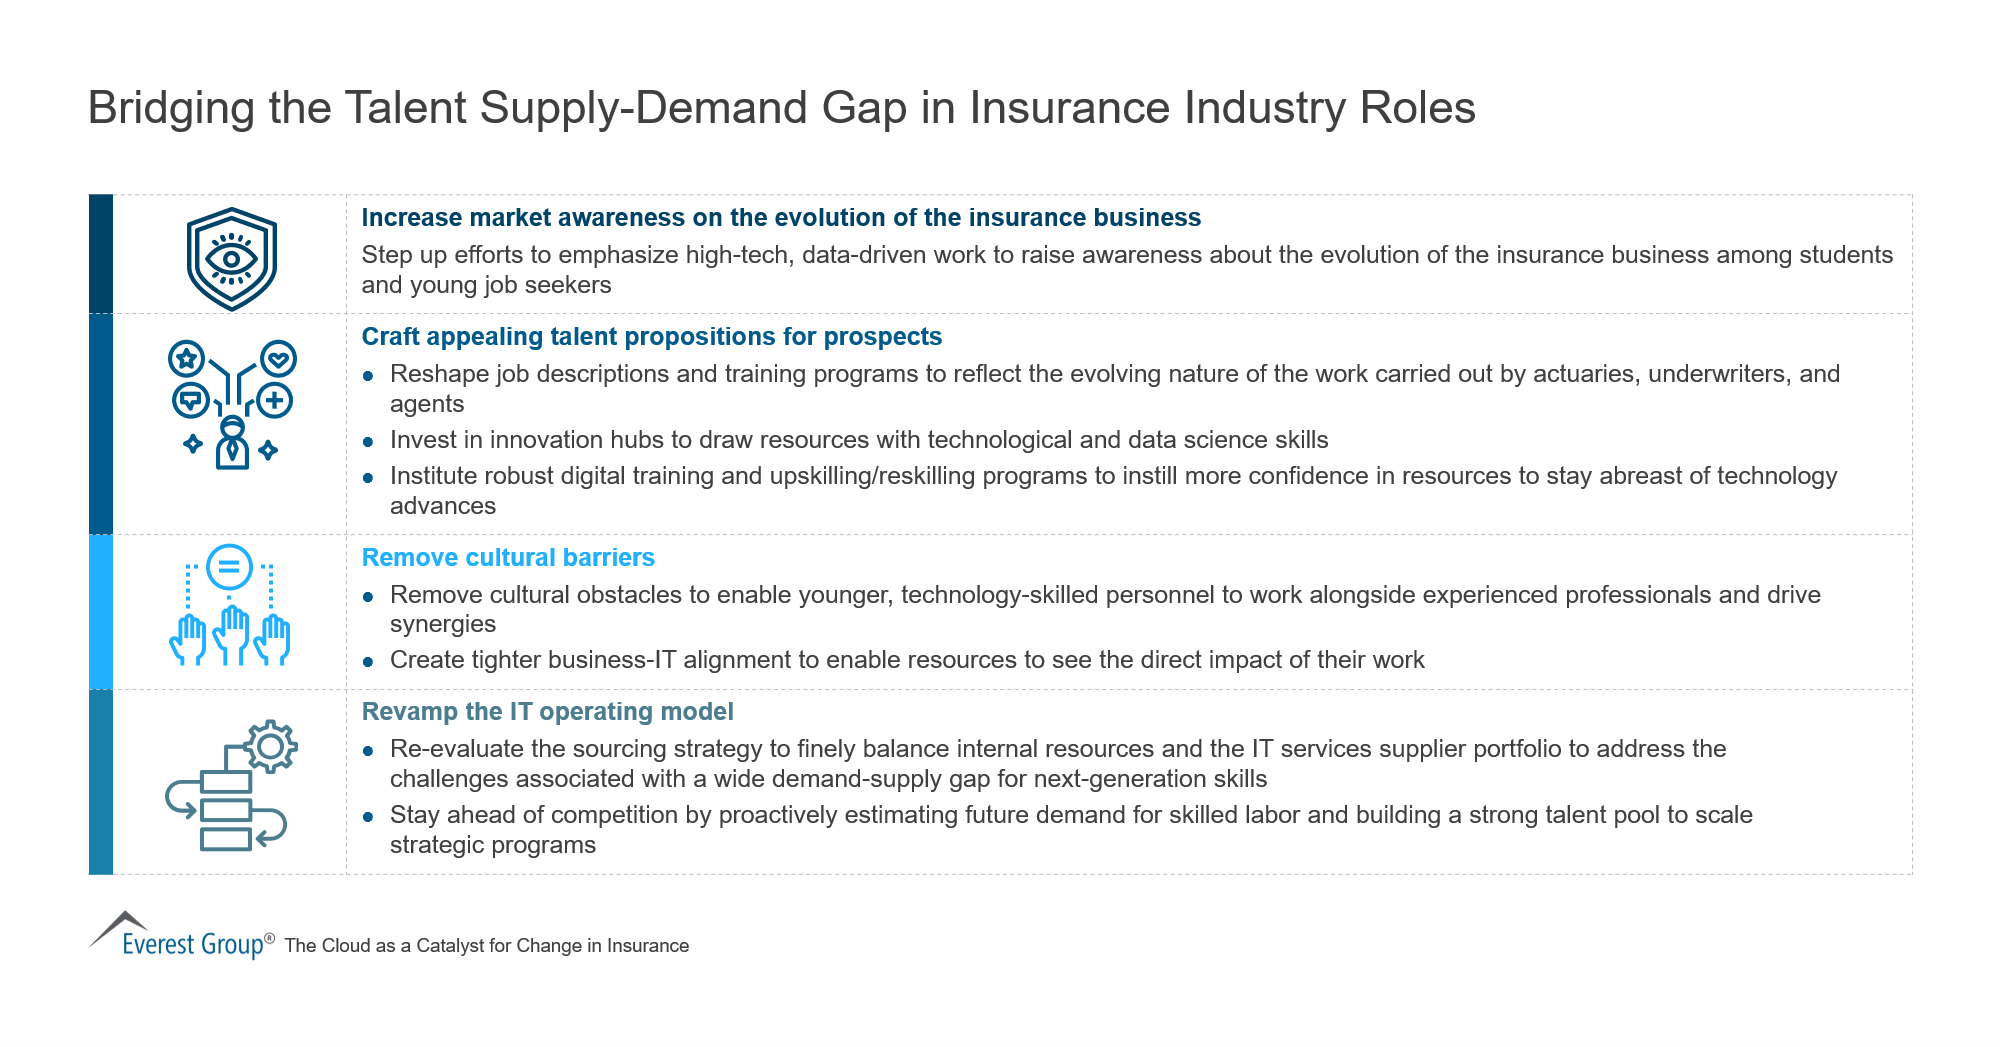 Bridging the Talent Supply-Demand Gap in Insurance Industry Roles